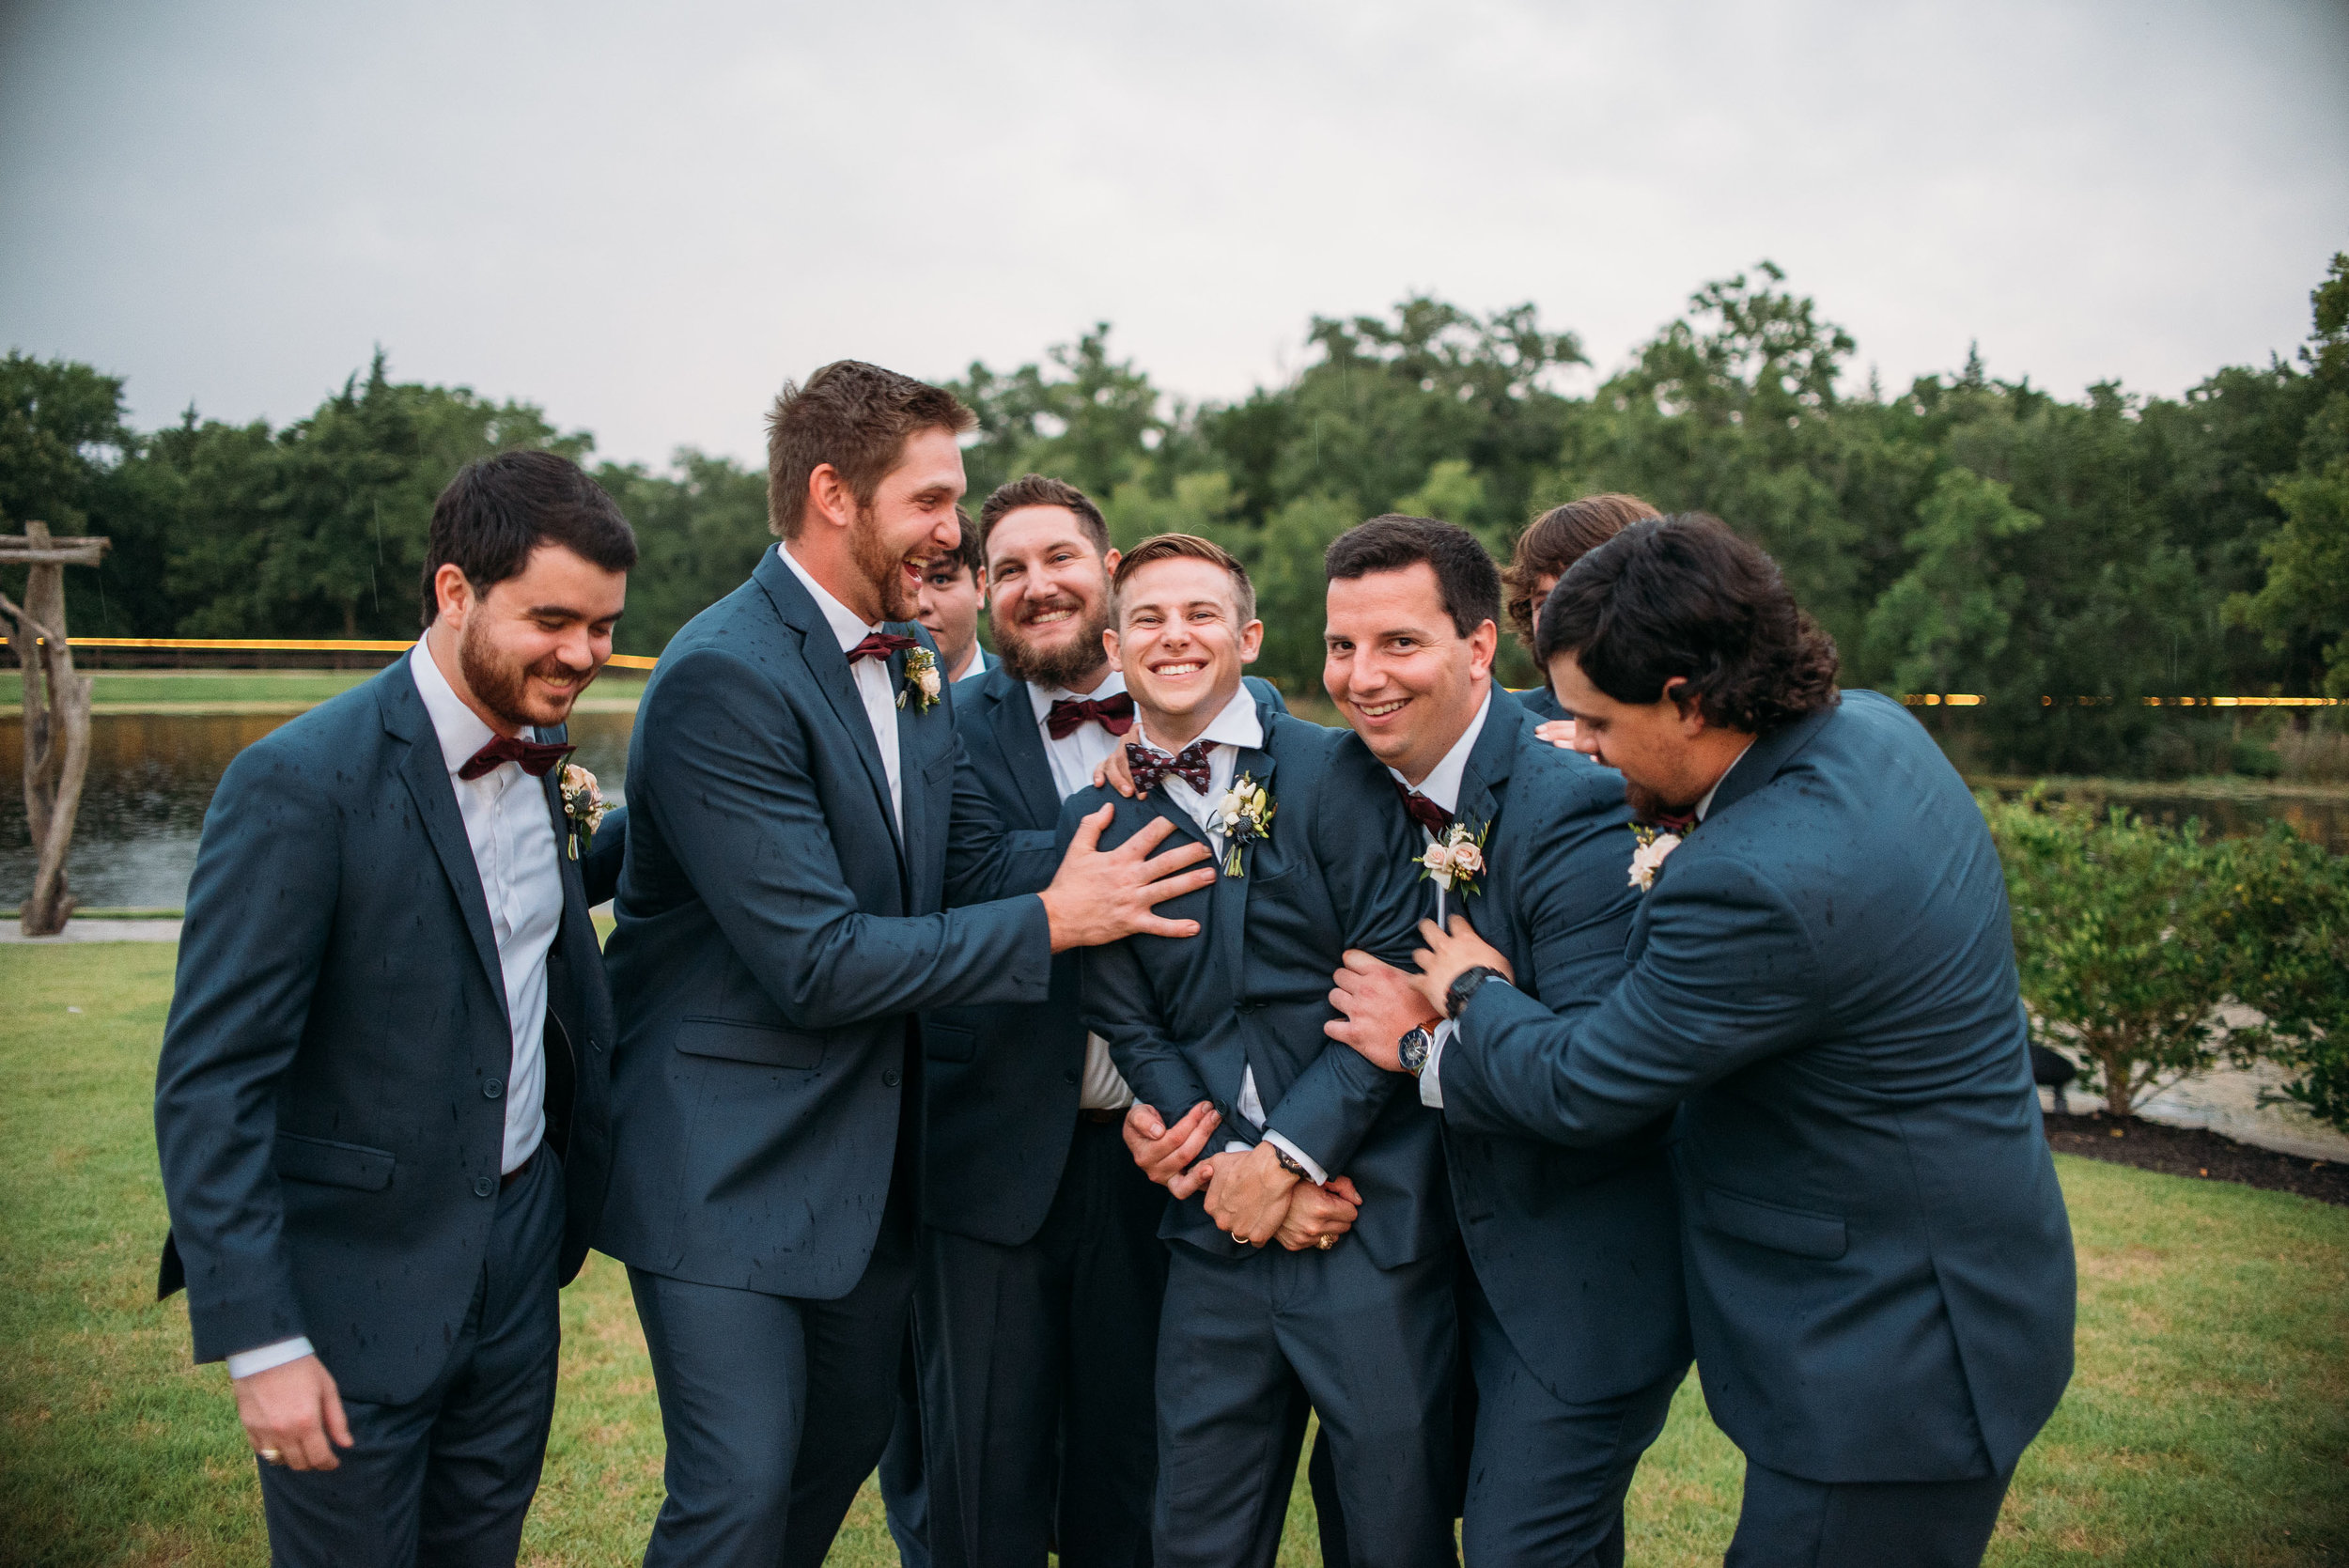 EmilyCody-Peach-Creek-Ranch-Wedding-Ceremony-Bridals-Engagement-College-Station-Photographer-Videographer-San-Angel-Photo-0239.jpg